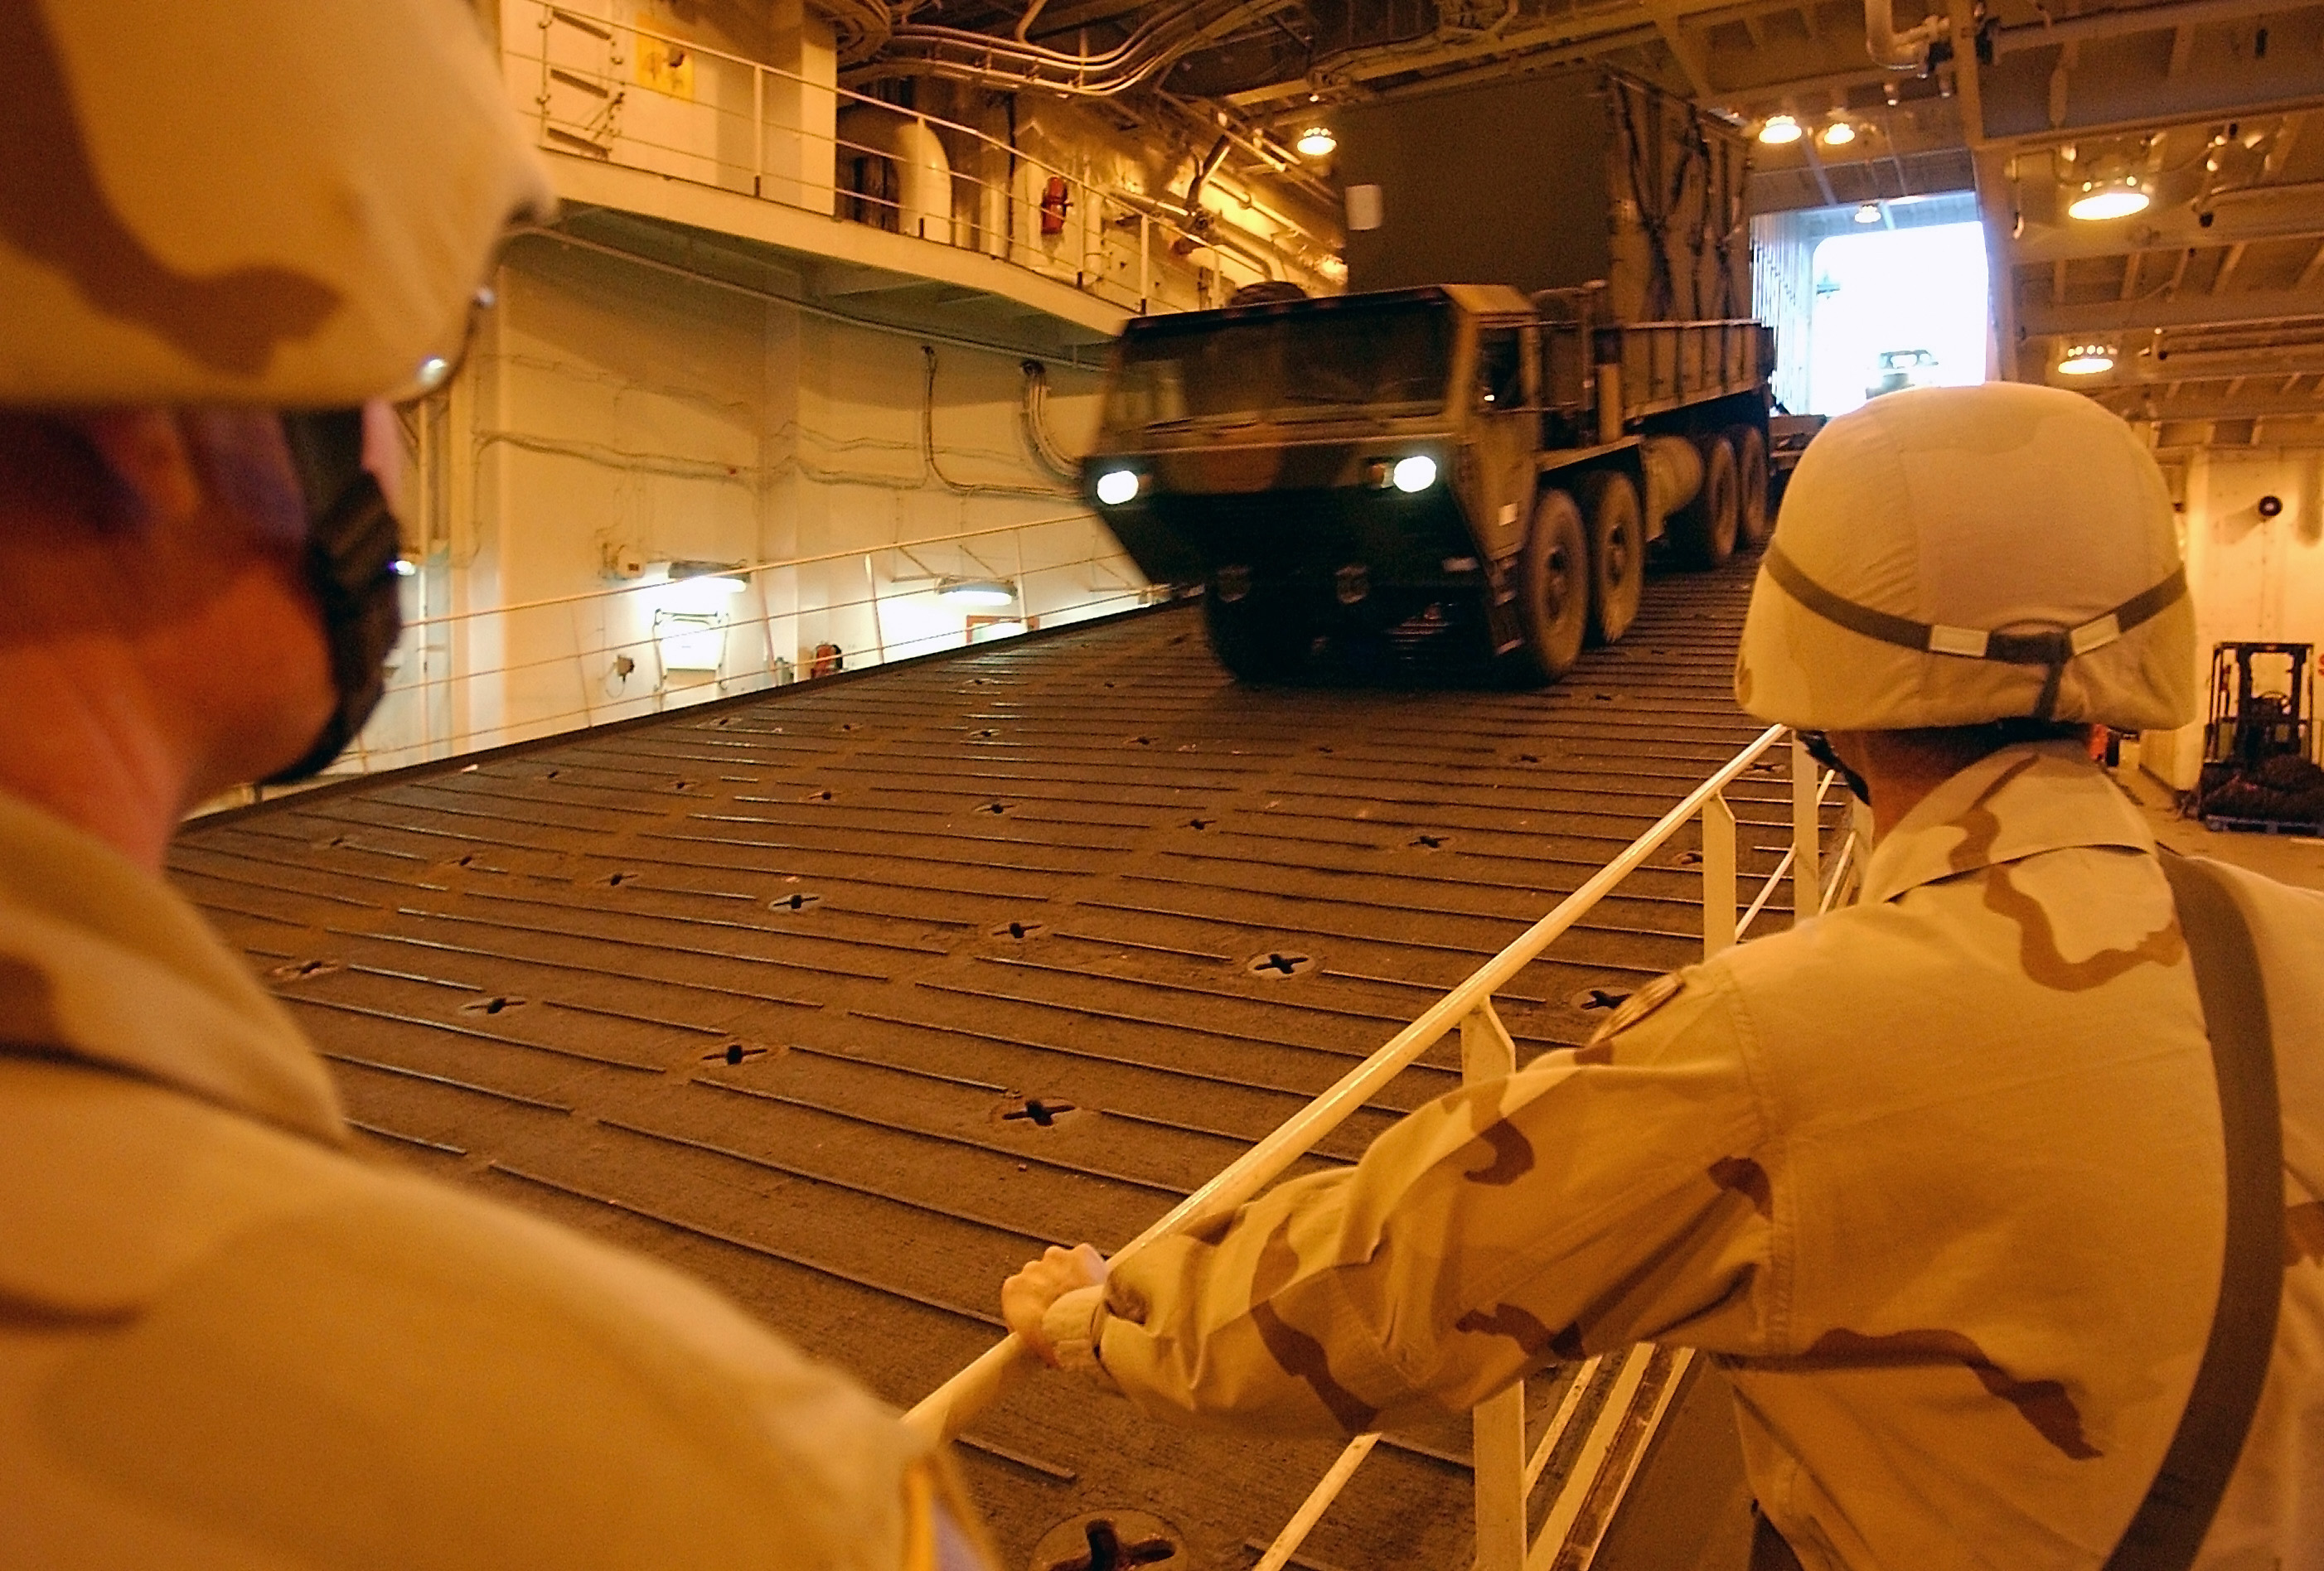 US Army (USA) Soldiers assigned to the 32nd Army Air and Missile Defense Company observe as vehicles a driven down a ramp while offloading from navy cargo vessels at the Port of As Shauybah, Kuwait, during Operation ENDURING FREEDOM